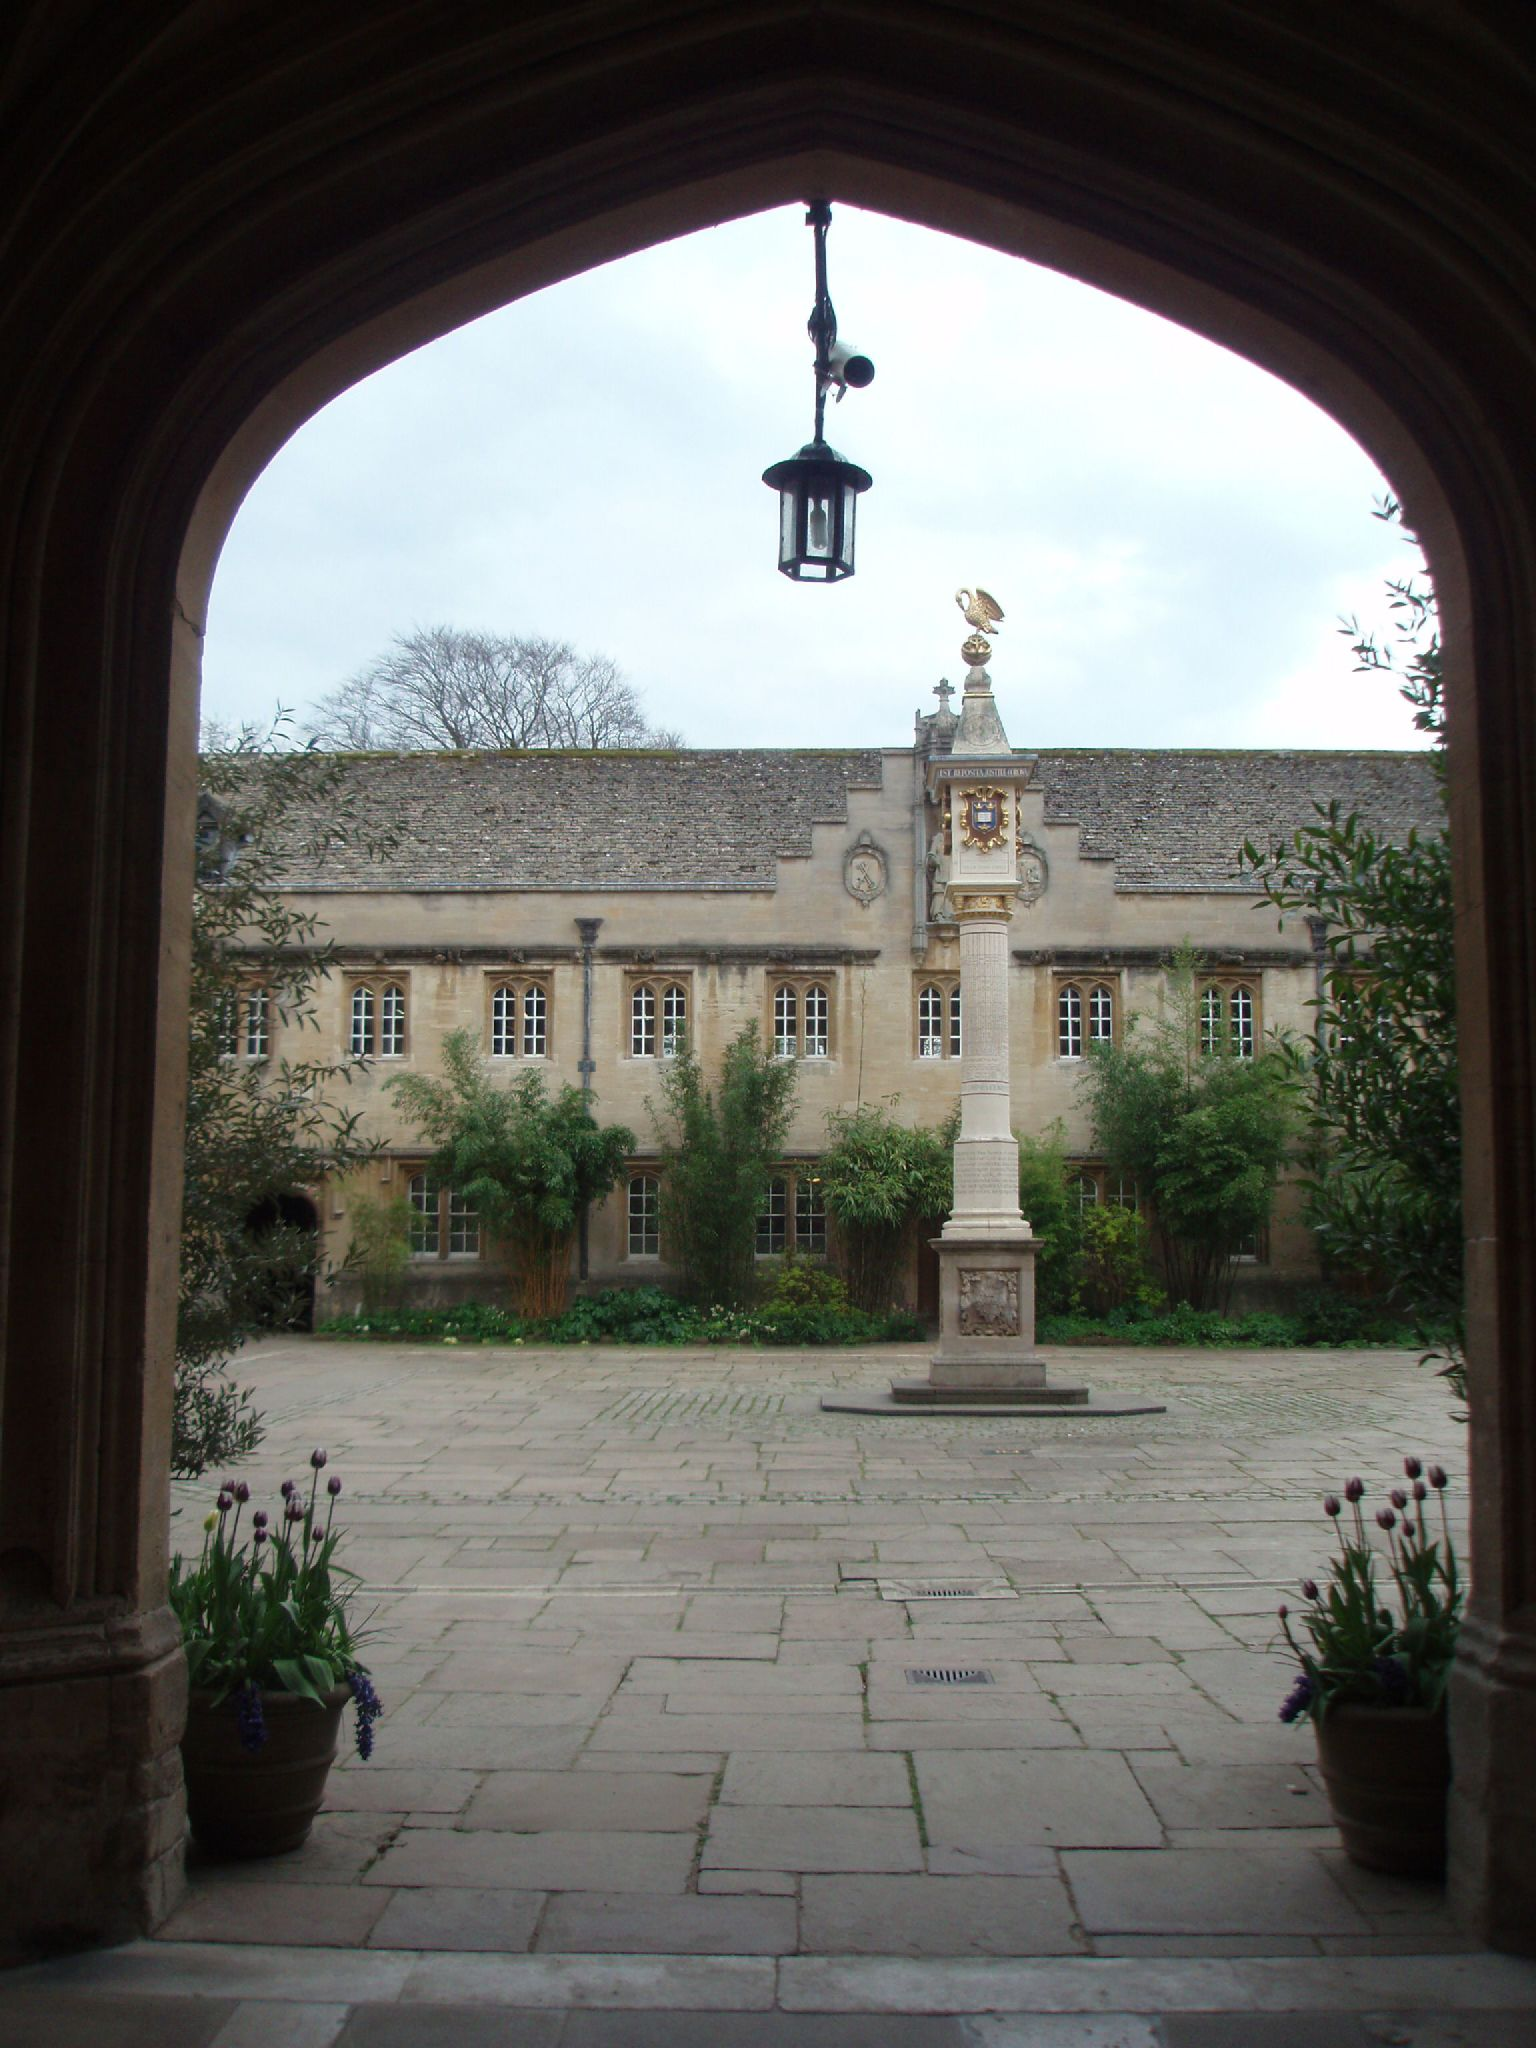 oxford university essay prizes The marc sanders prize in philosophy of mind is an annual essay competition open to  she holds a dphil from oxford university  sanders prizes philosophy of.